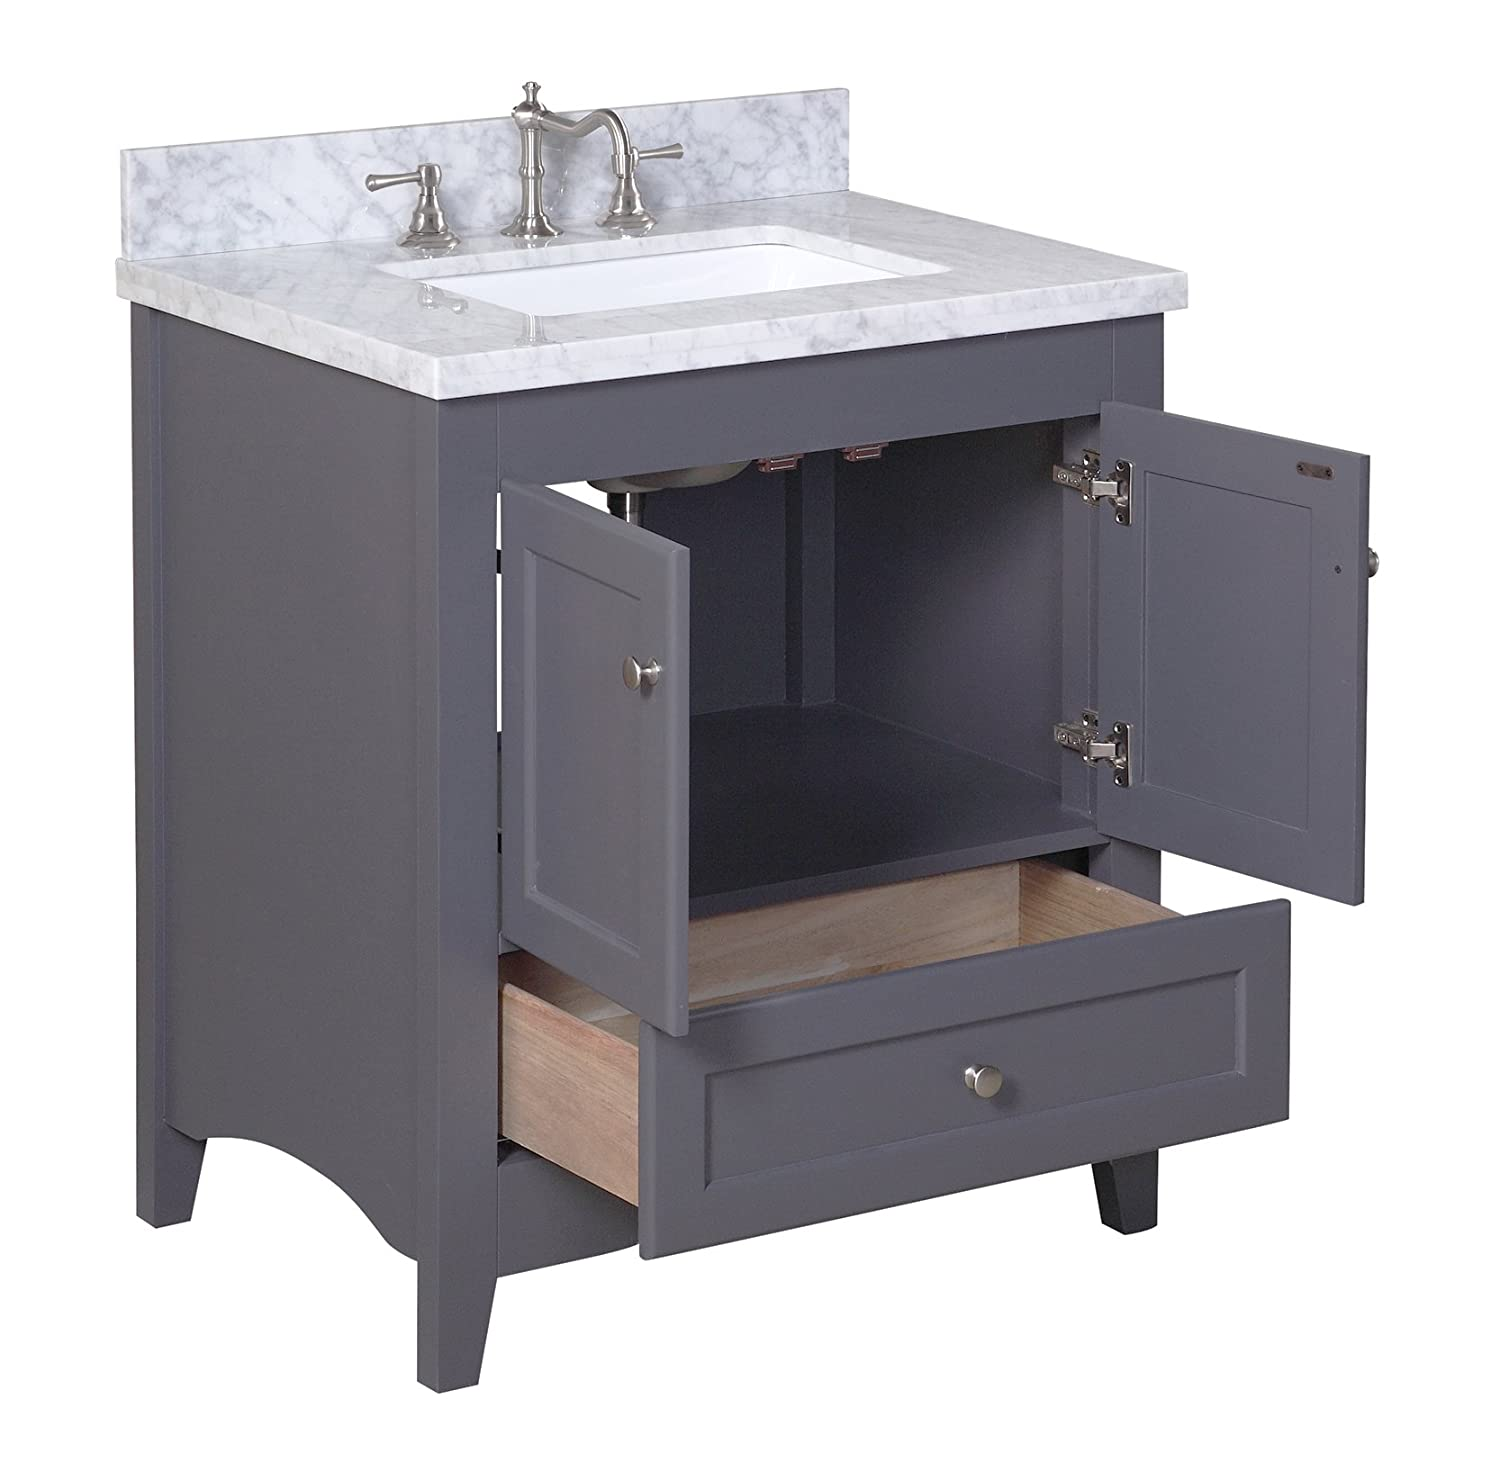 Kitchen Bath Collection KBC3830GYCARR Abbey Bathroom Vanity Set With Marble  Countertop, Cabinet With Soft Close Function And Undermount Ceramic Sink,  ...